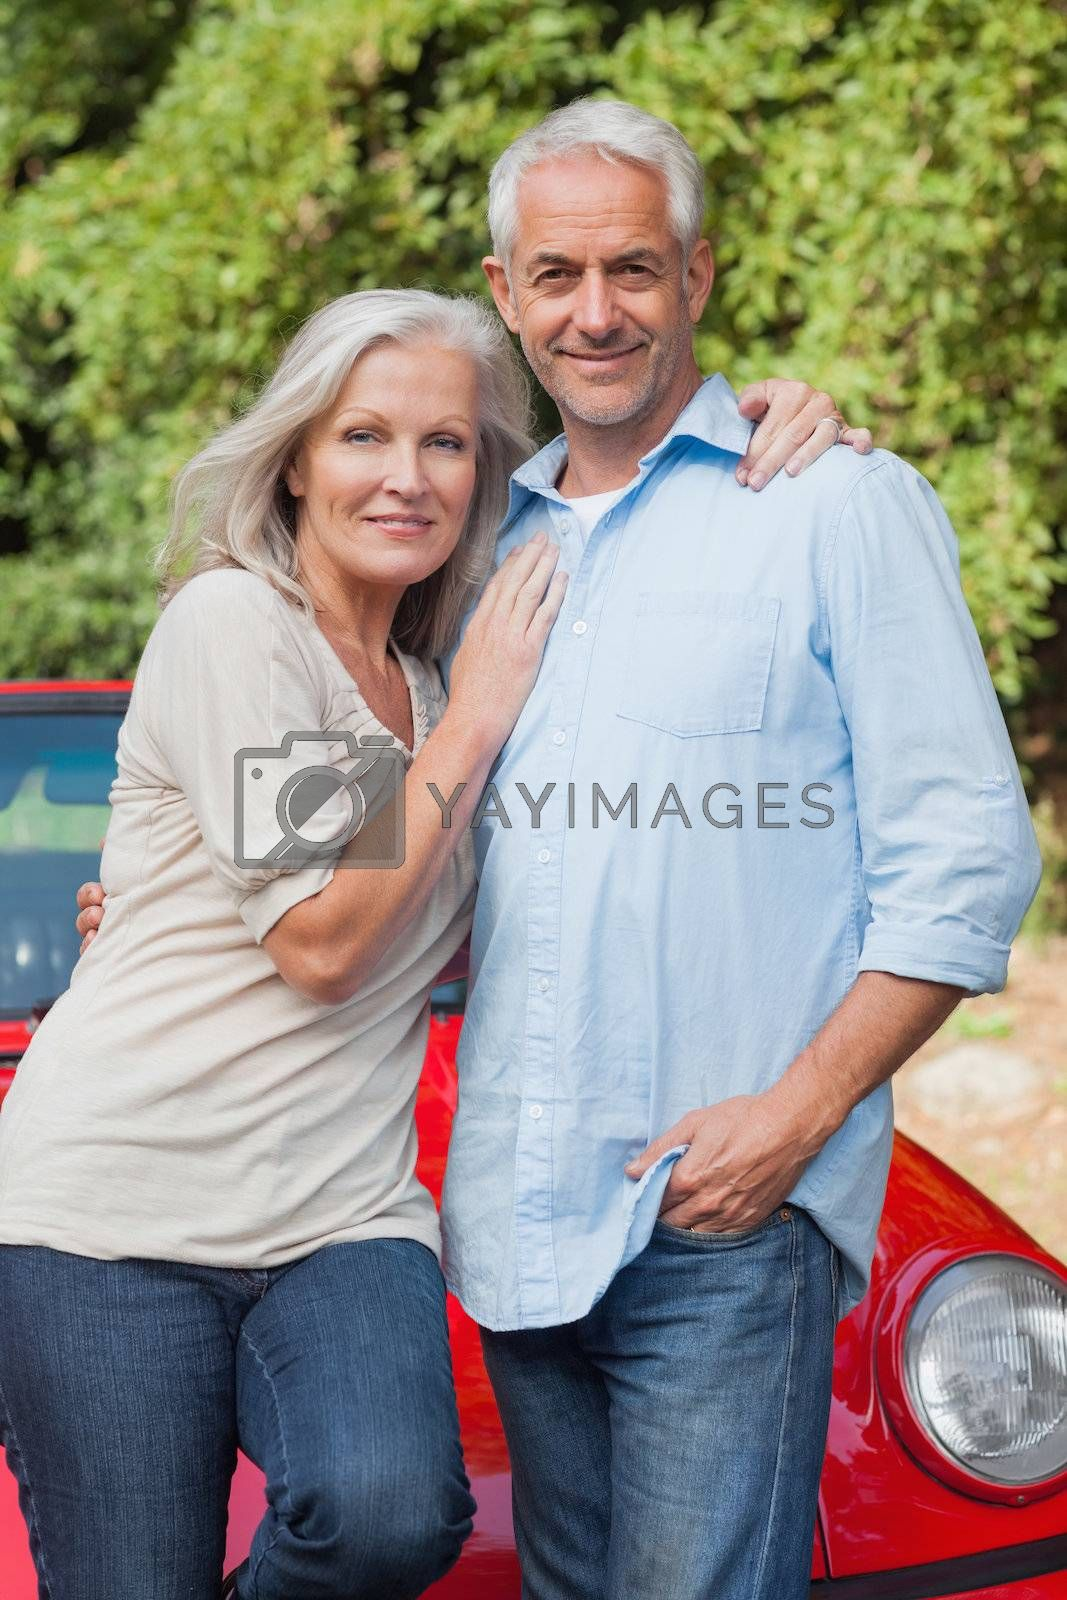 Smiling mature couple posing  by Wavebreakmedia